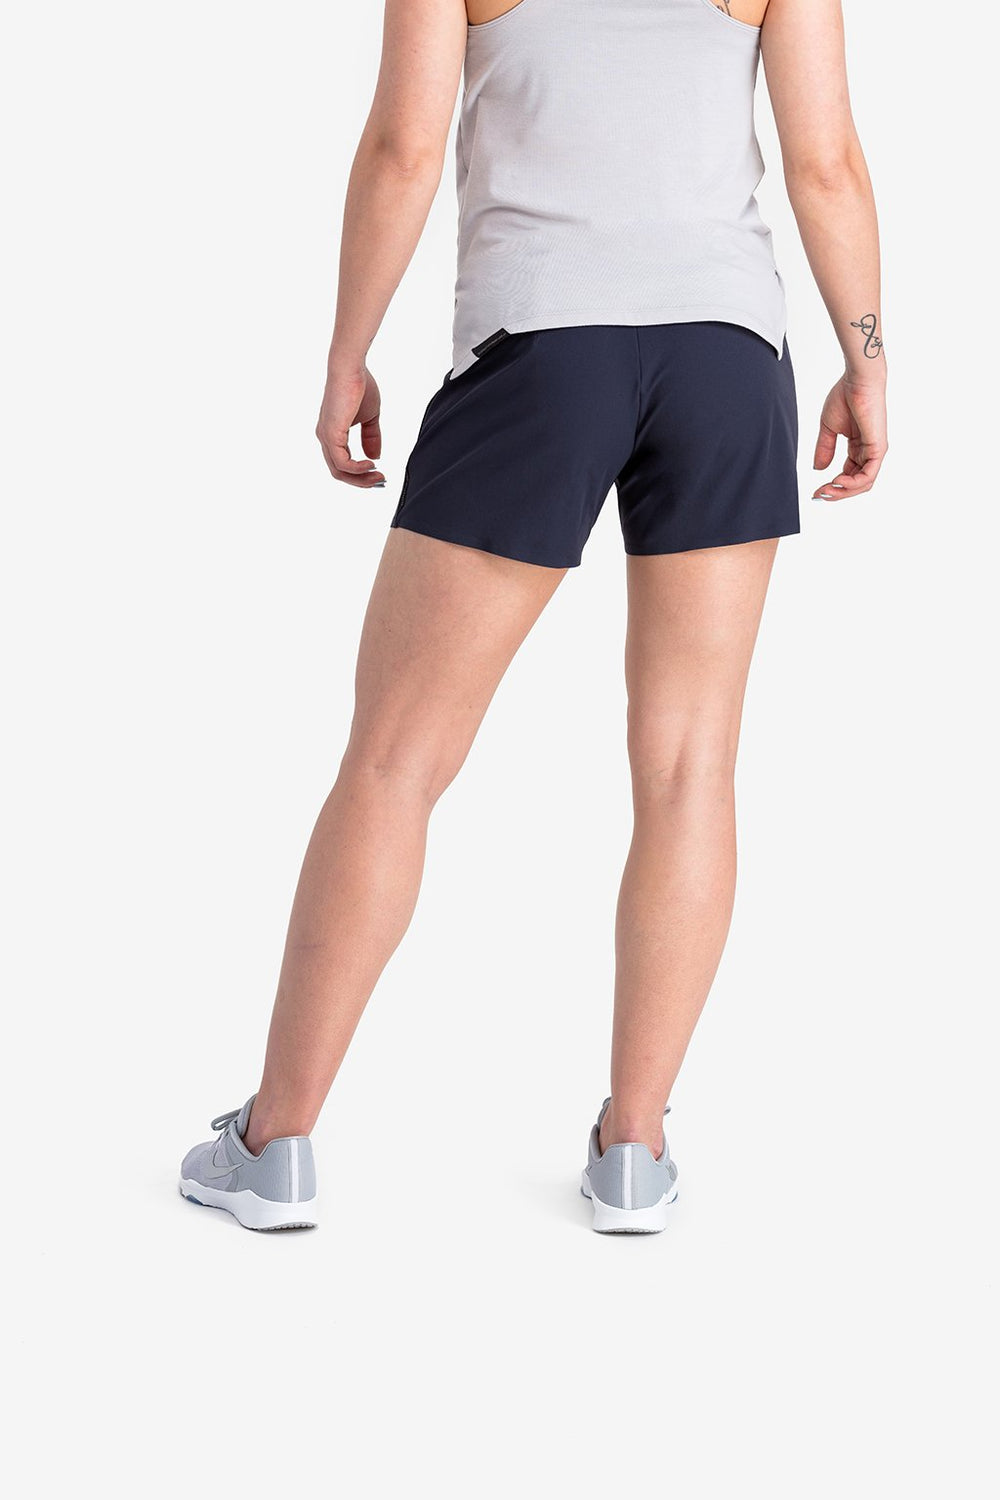 RYU Womens Power Short in Blackened Navy